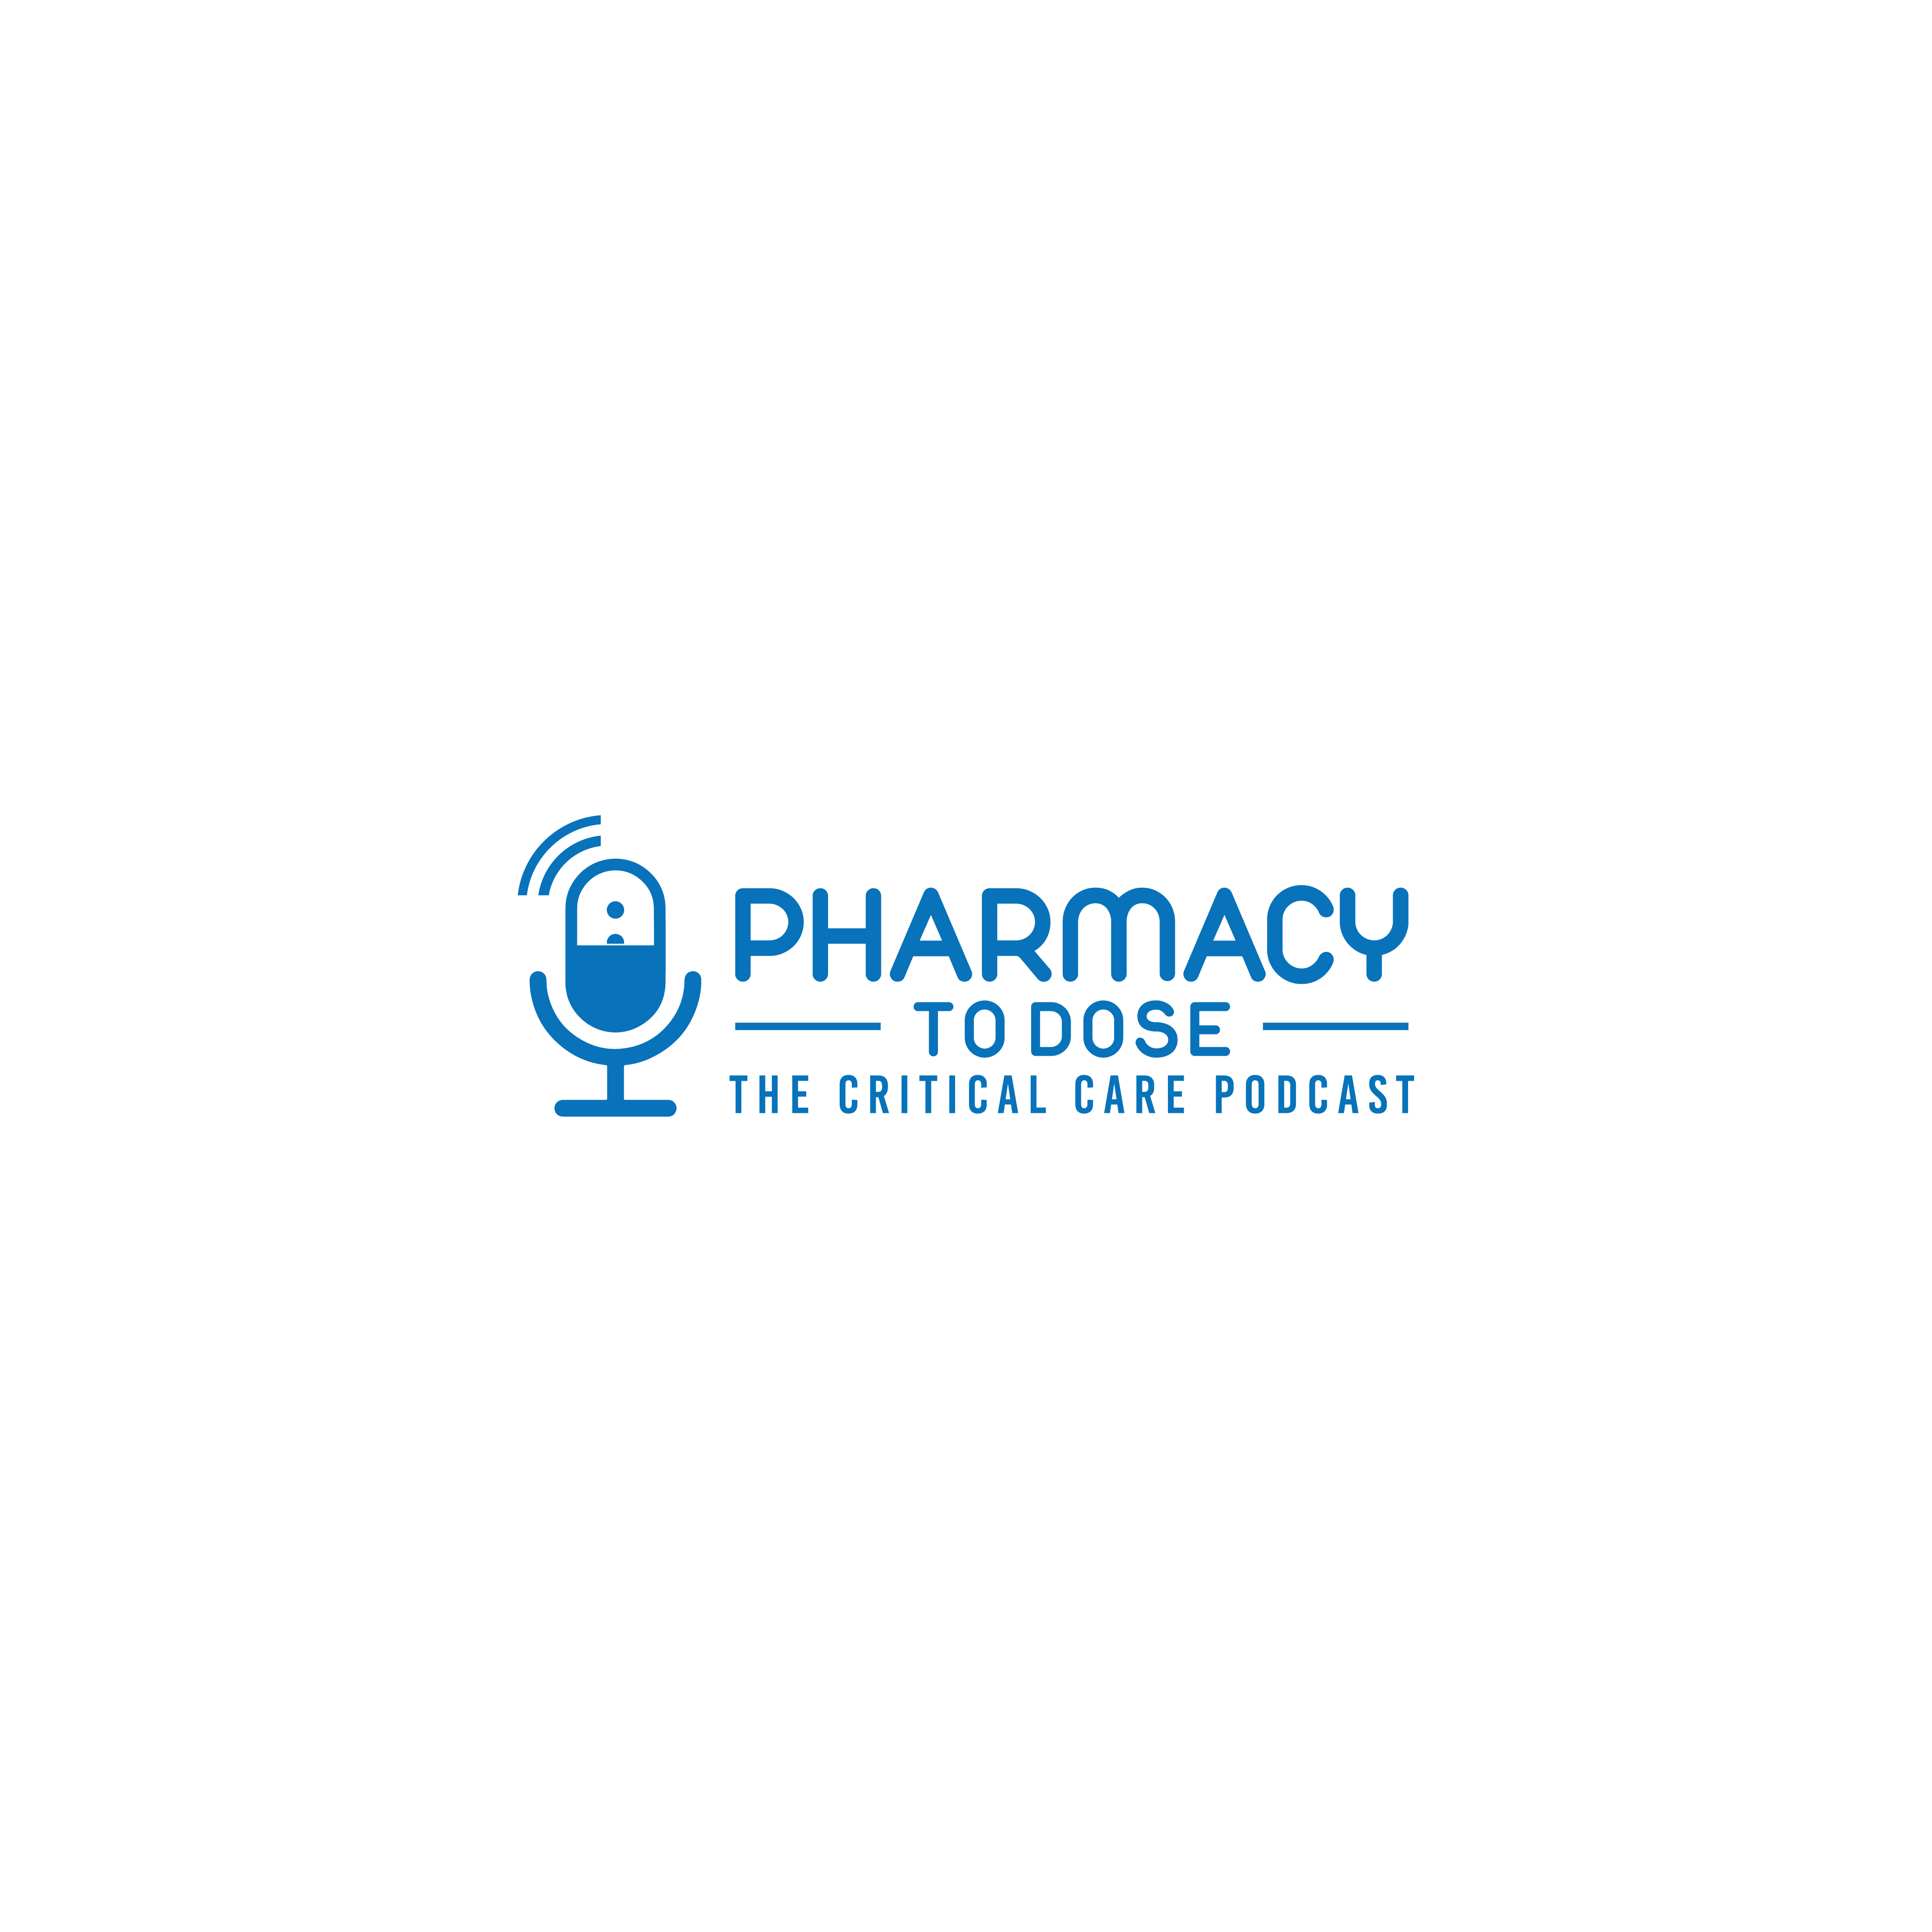 Introducing Pharmacy to Dose: The Critical Care Podcast